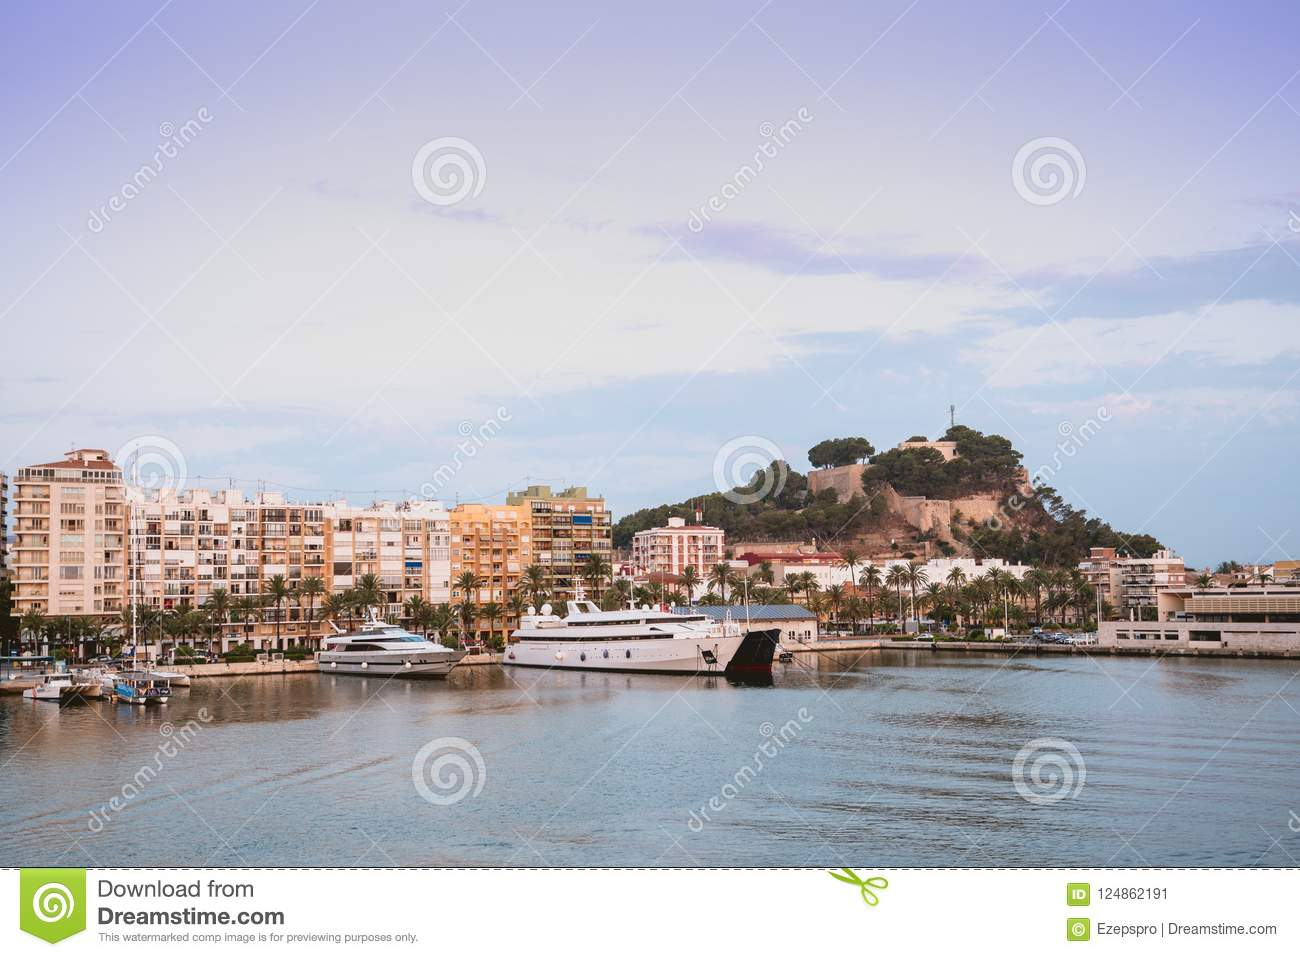 Port of Denia, castle and boats, Valencian Community, Spain